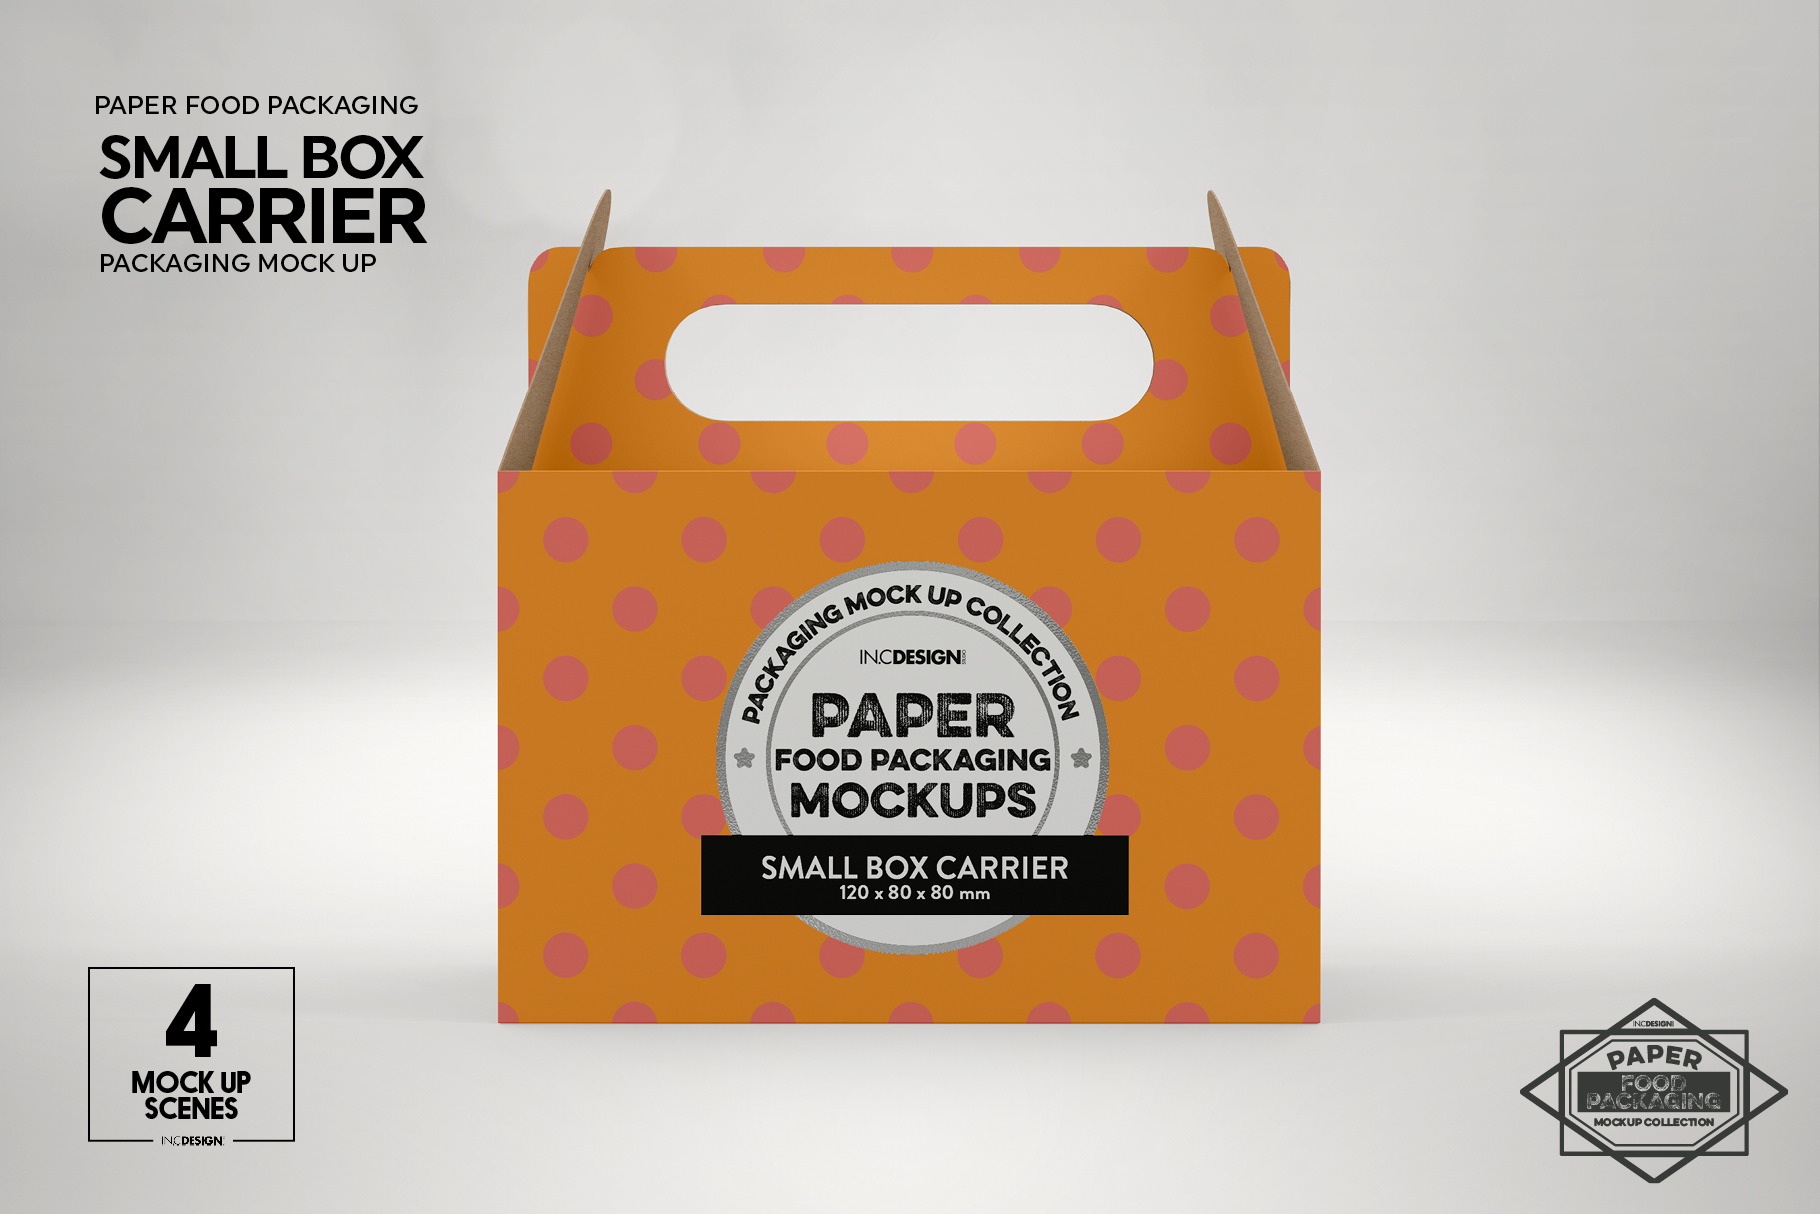 Small Cake Box Carrier Packaging Mockup example image 5